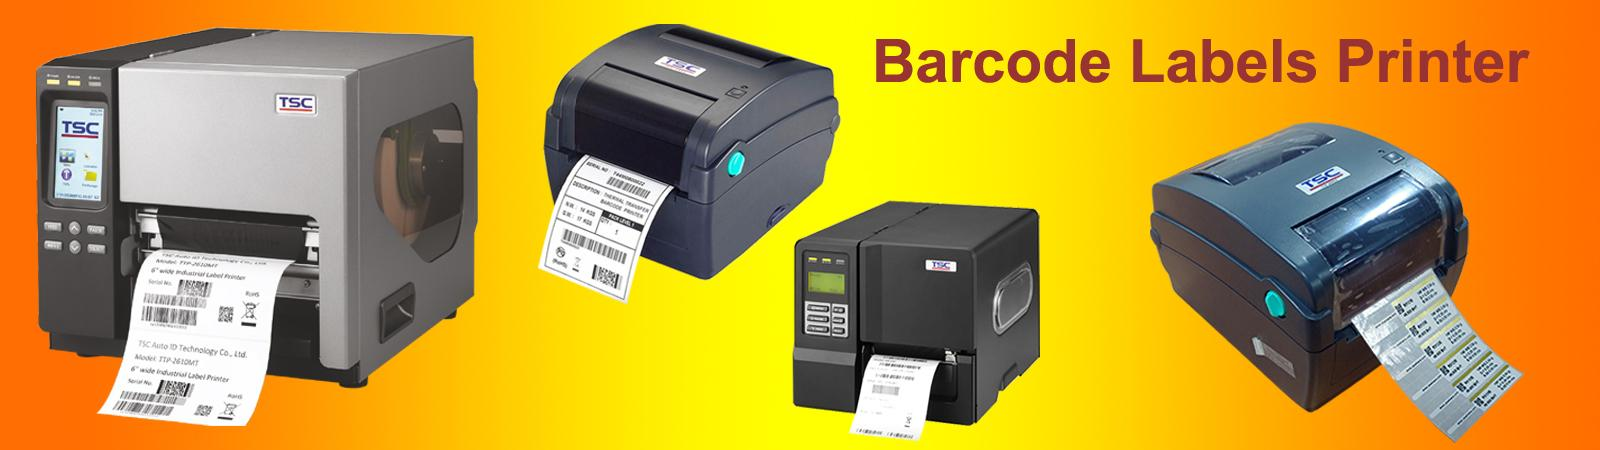 Indian Barcode Corporation - Printing of Labels in Narora